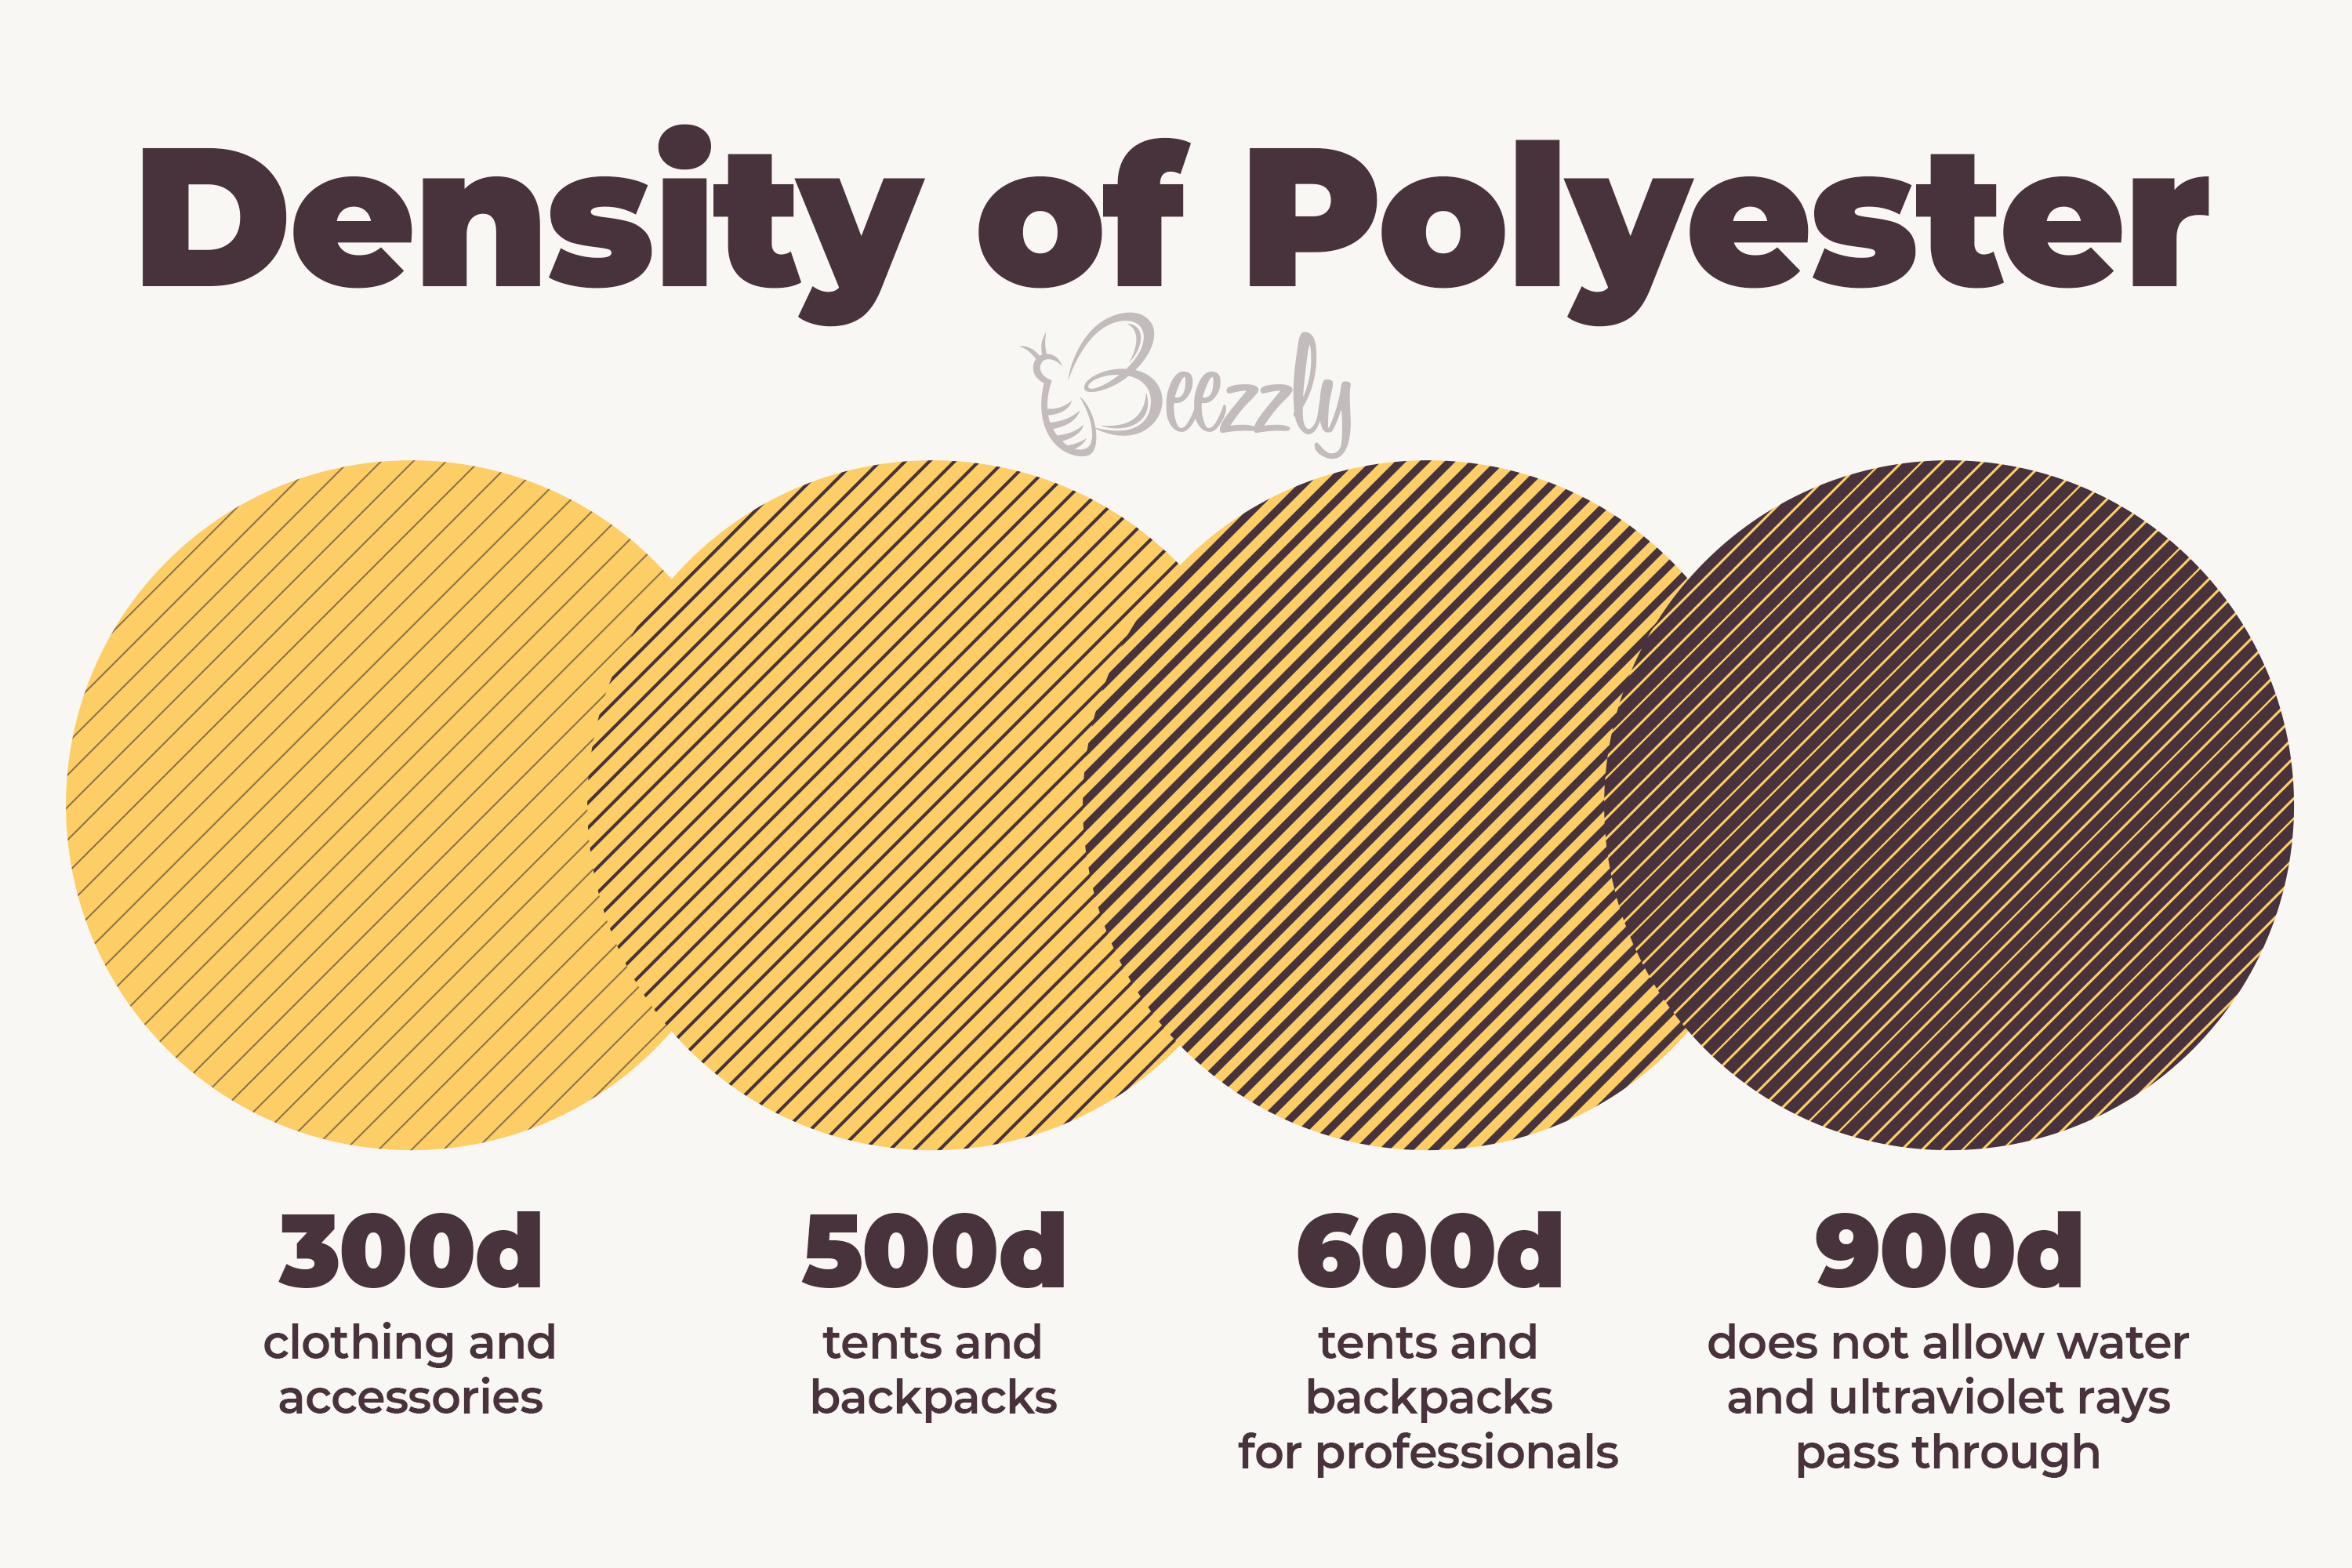 density of polyester